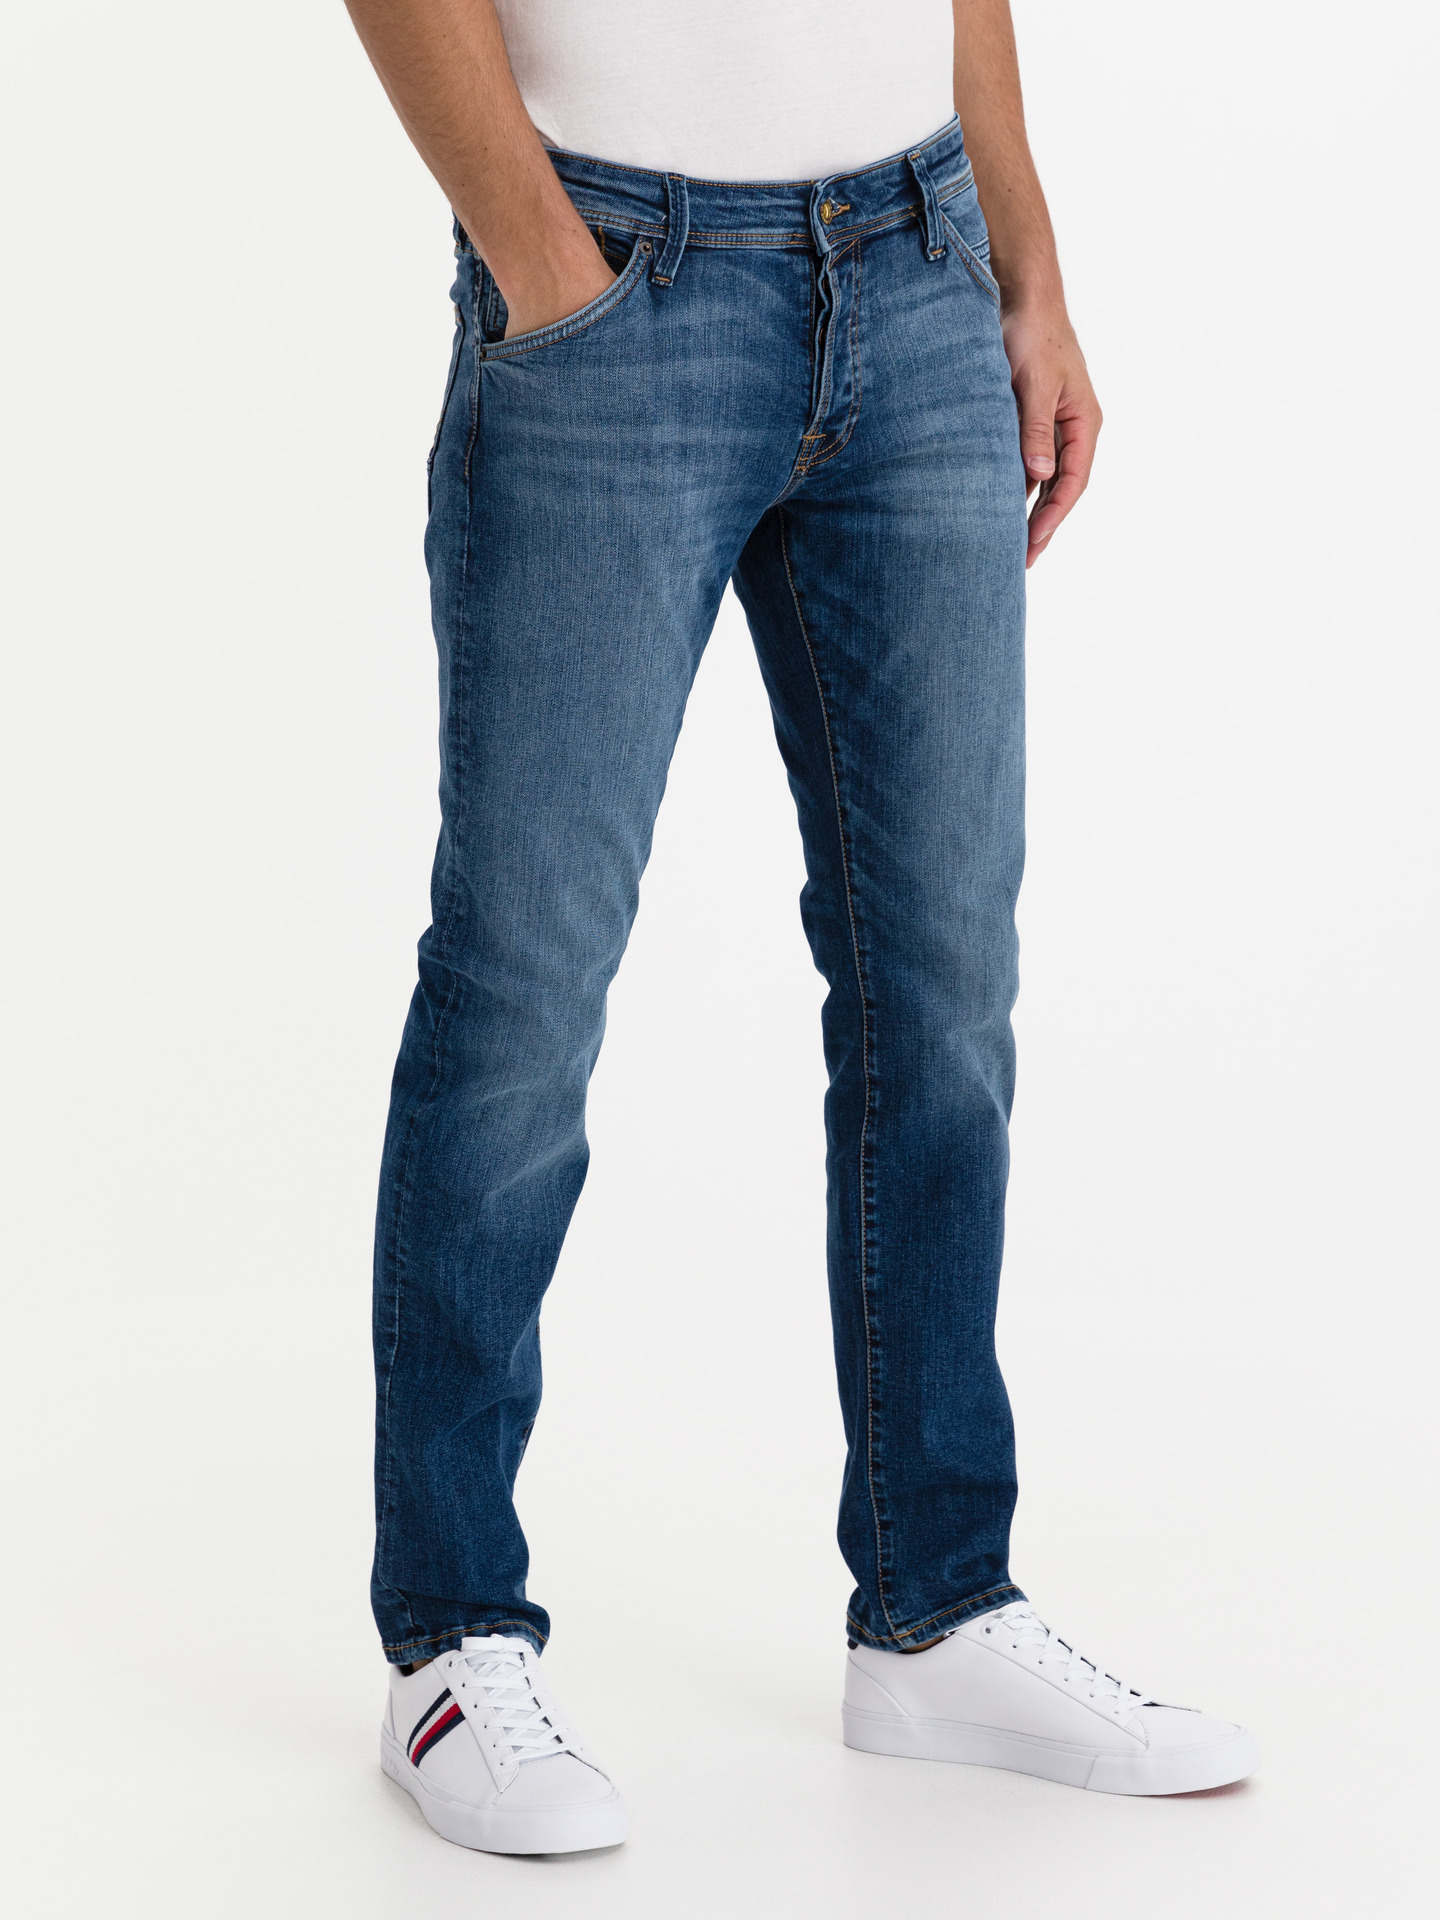 Glenn Fox Jeans Jack   Jones Modrá